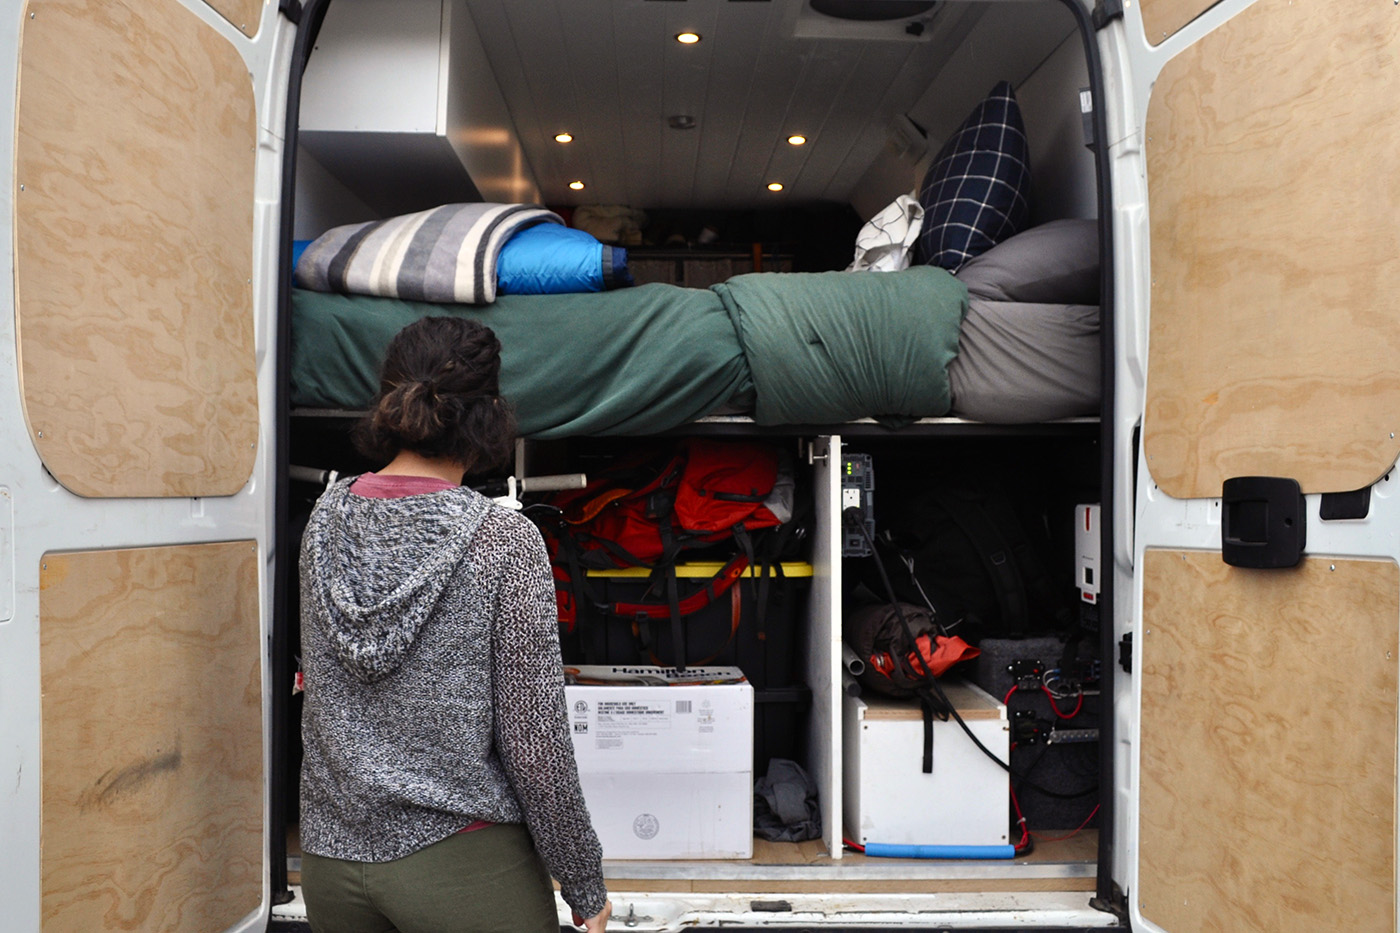 San Luis Obispo students are choosing to live in vans to